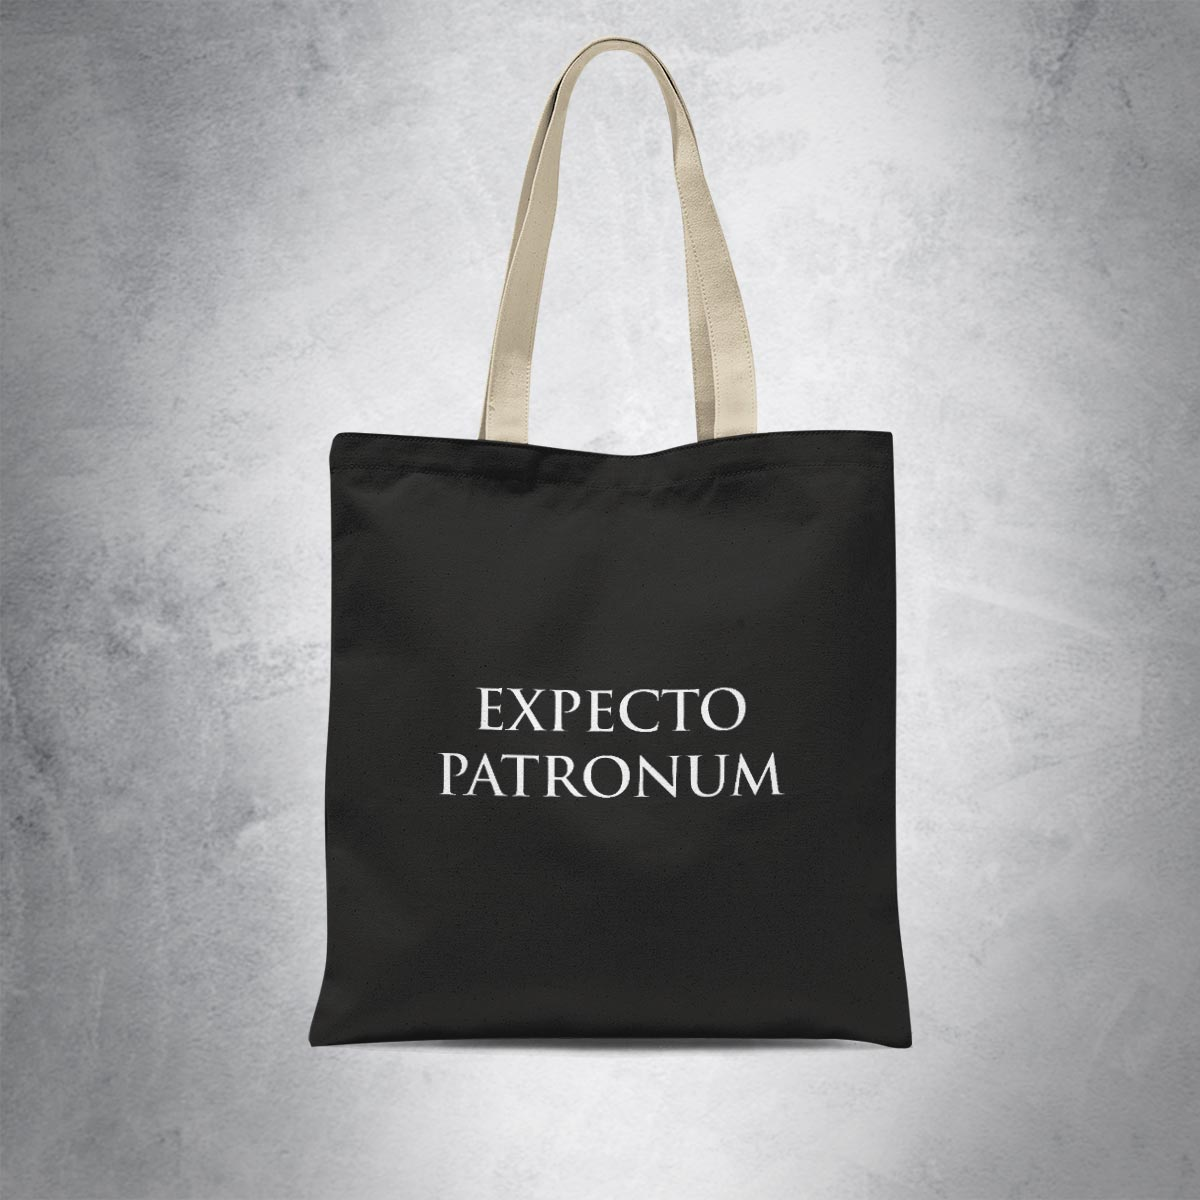 HARRY POTTER - Expecto Patronum